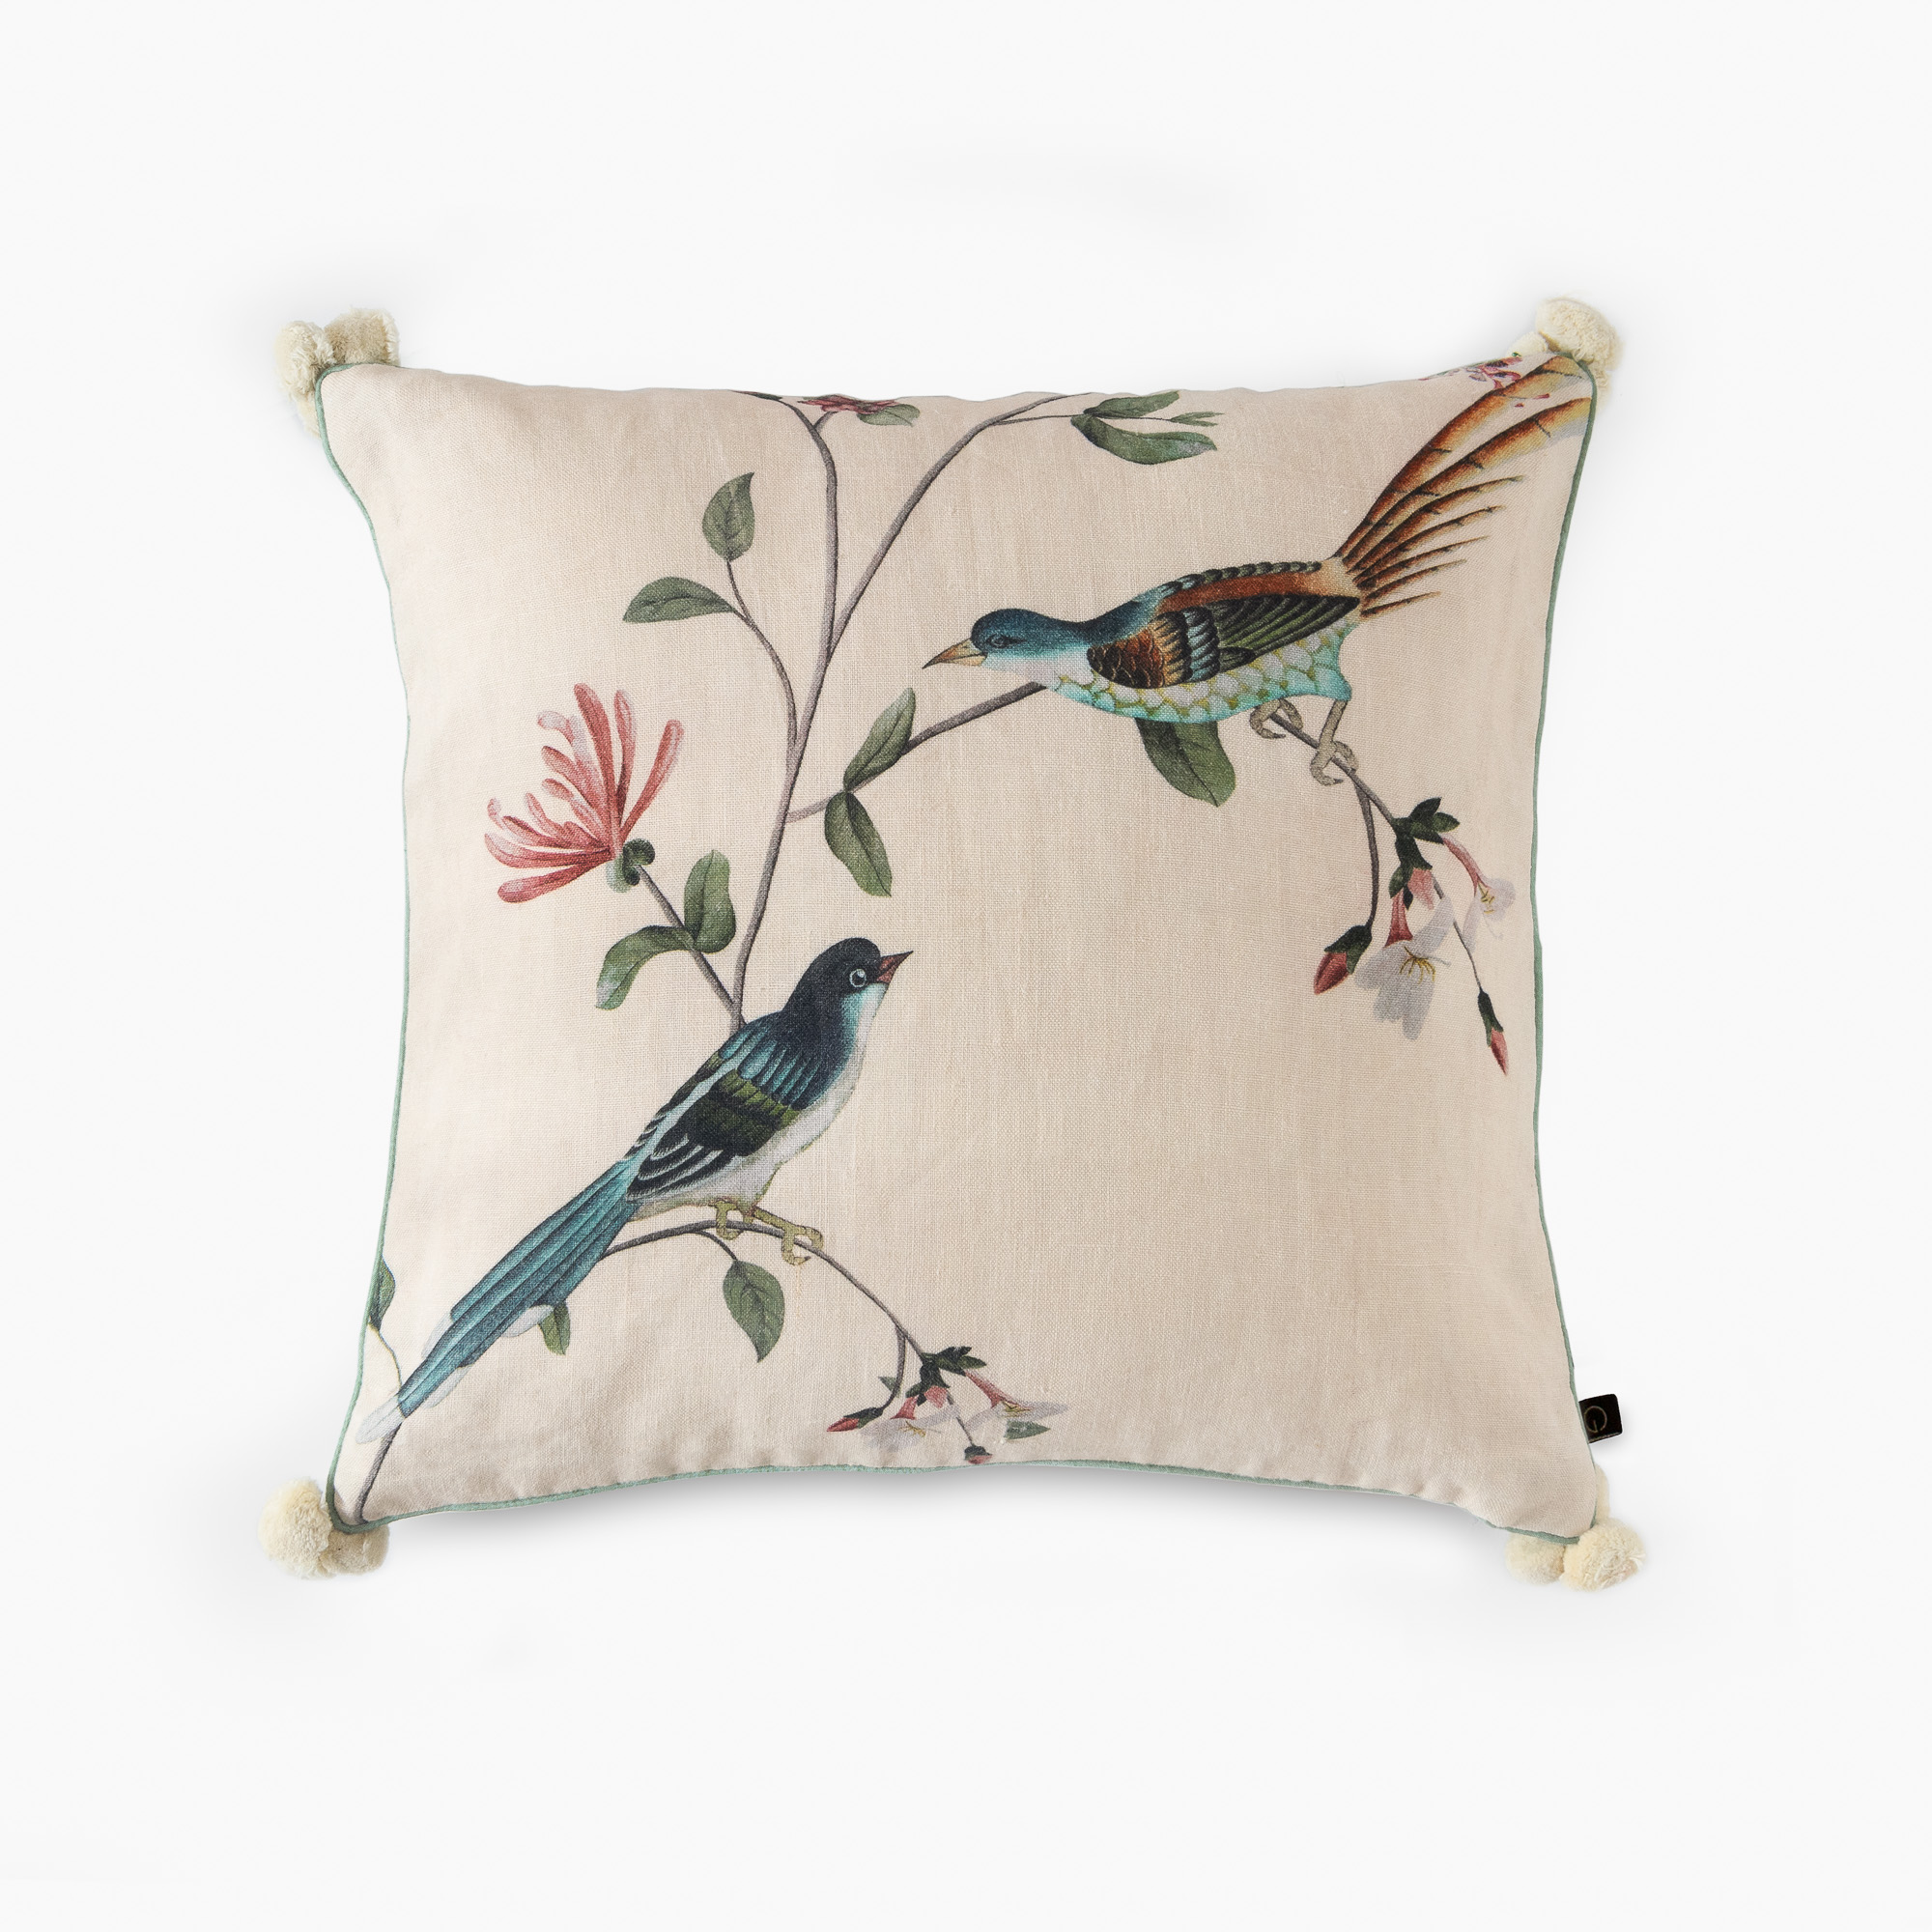 A BIRD DIALOGUE CUSHION COVER